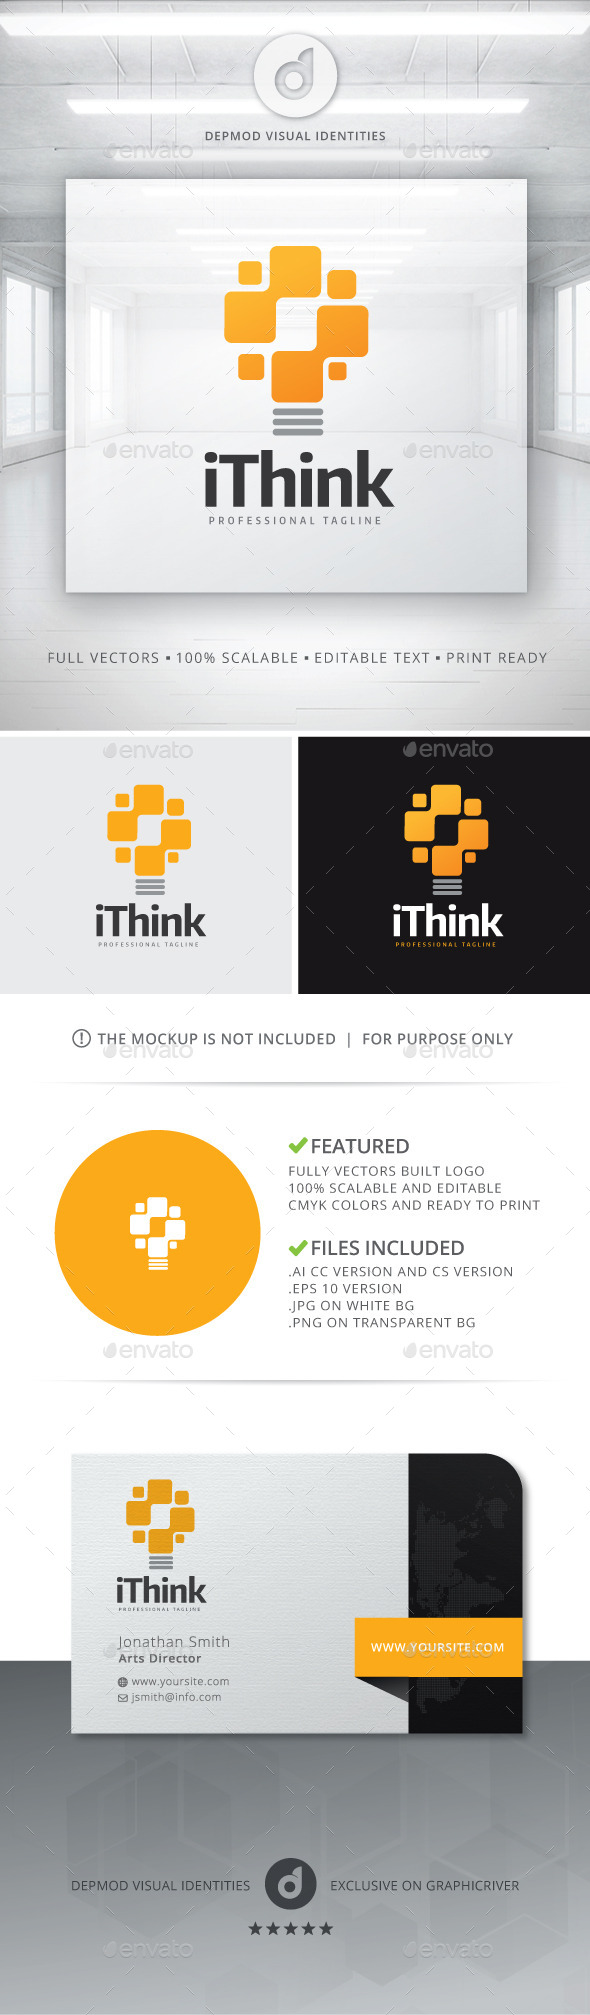 GraphicRiver iThink Logo 11200717